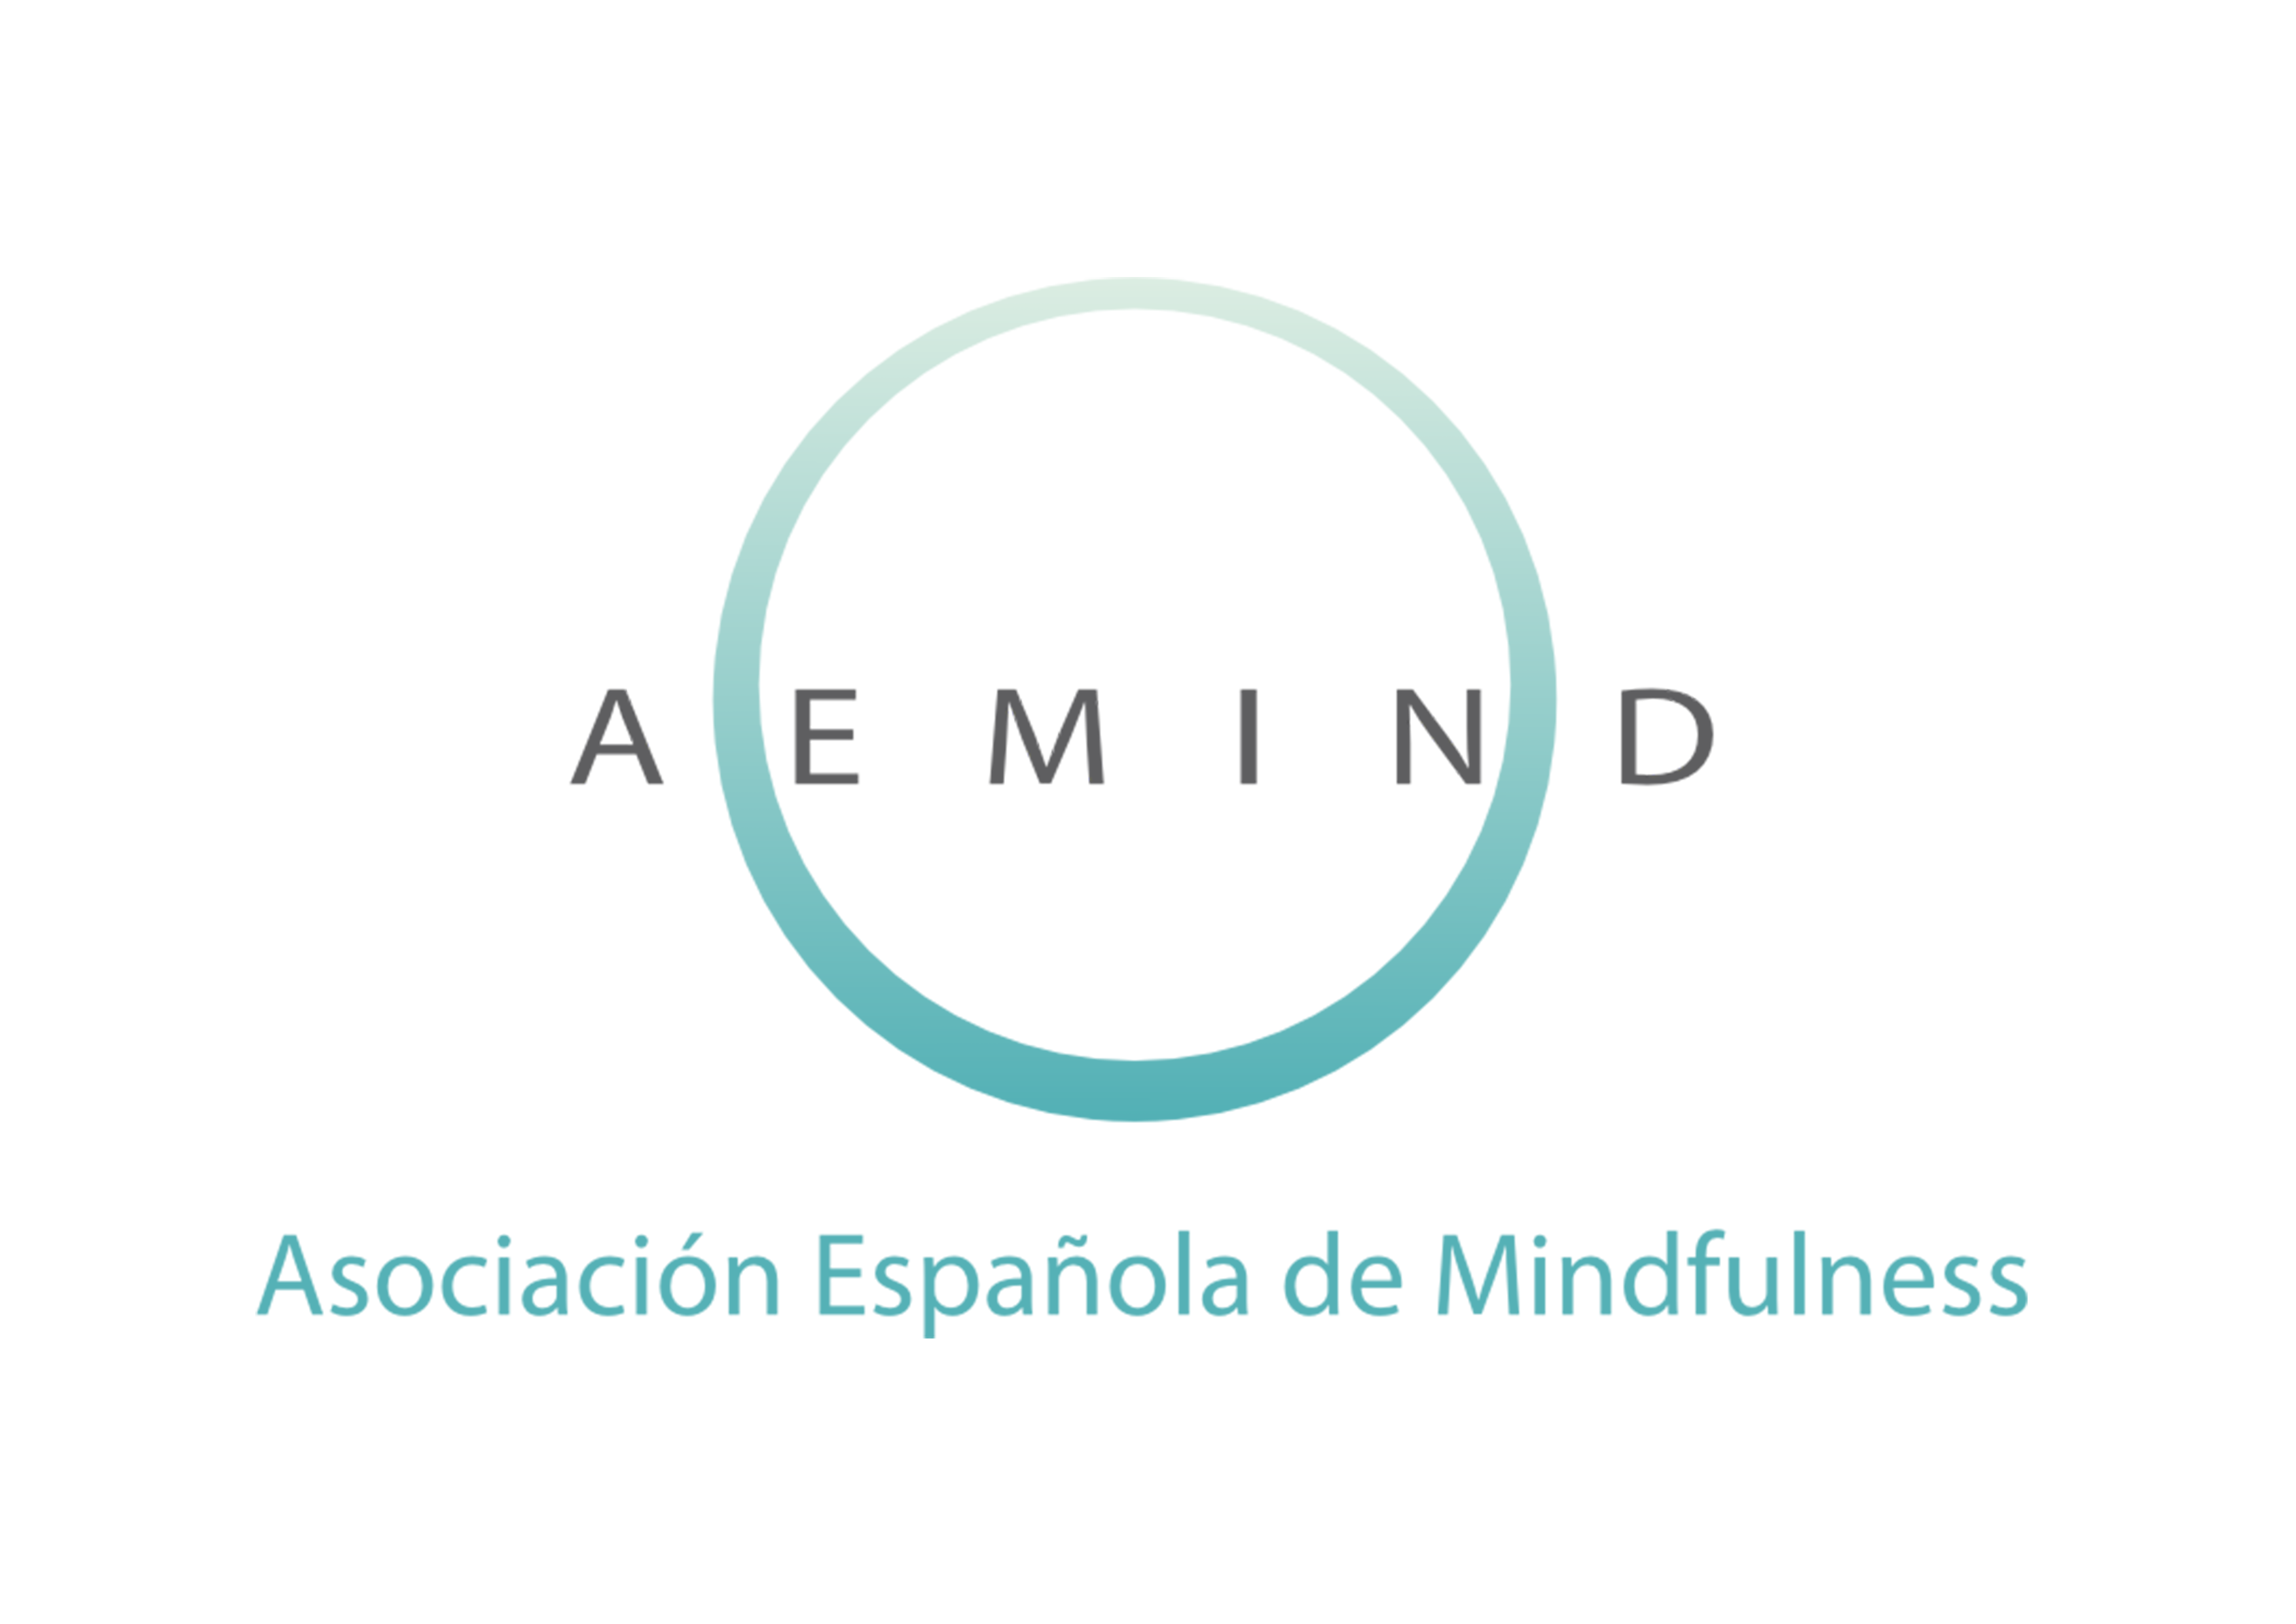 logo-aemind-color-alta